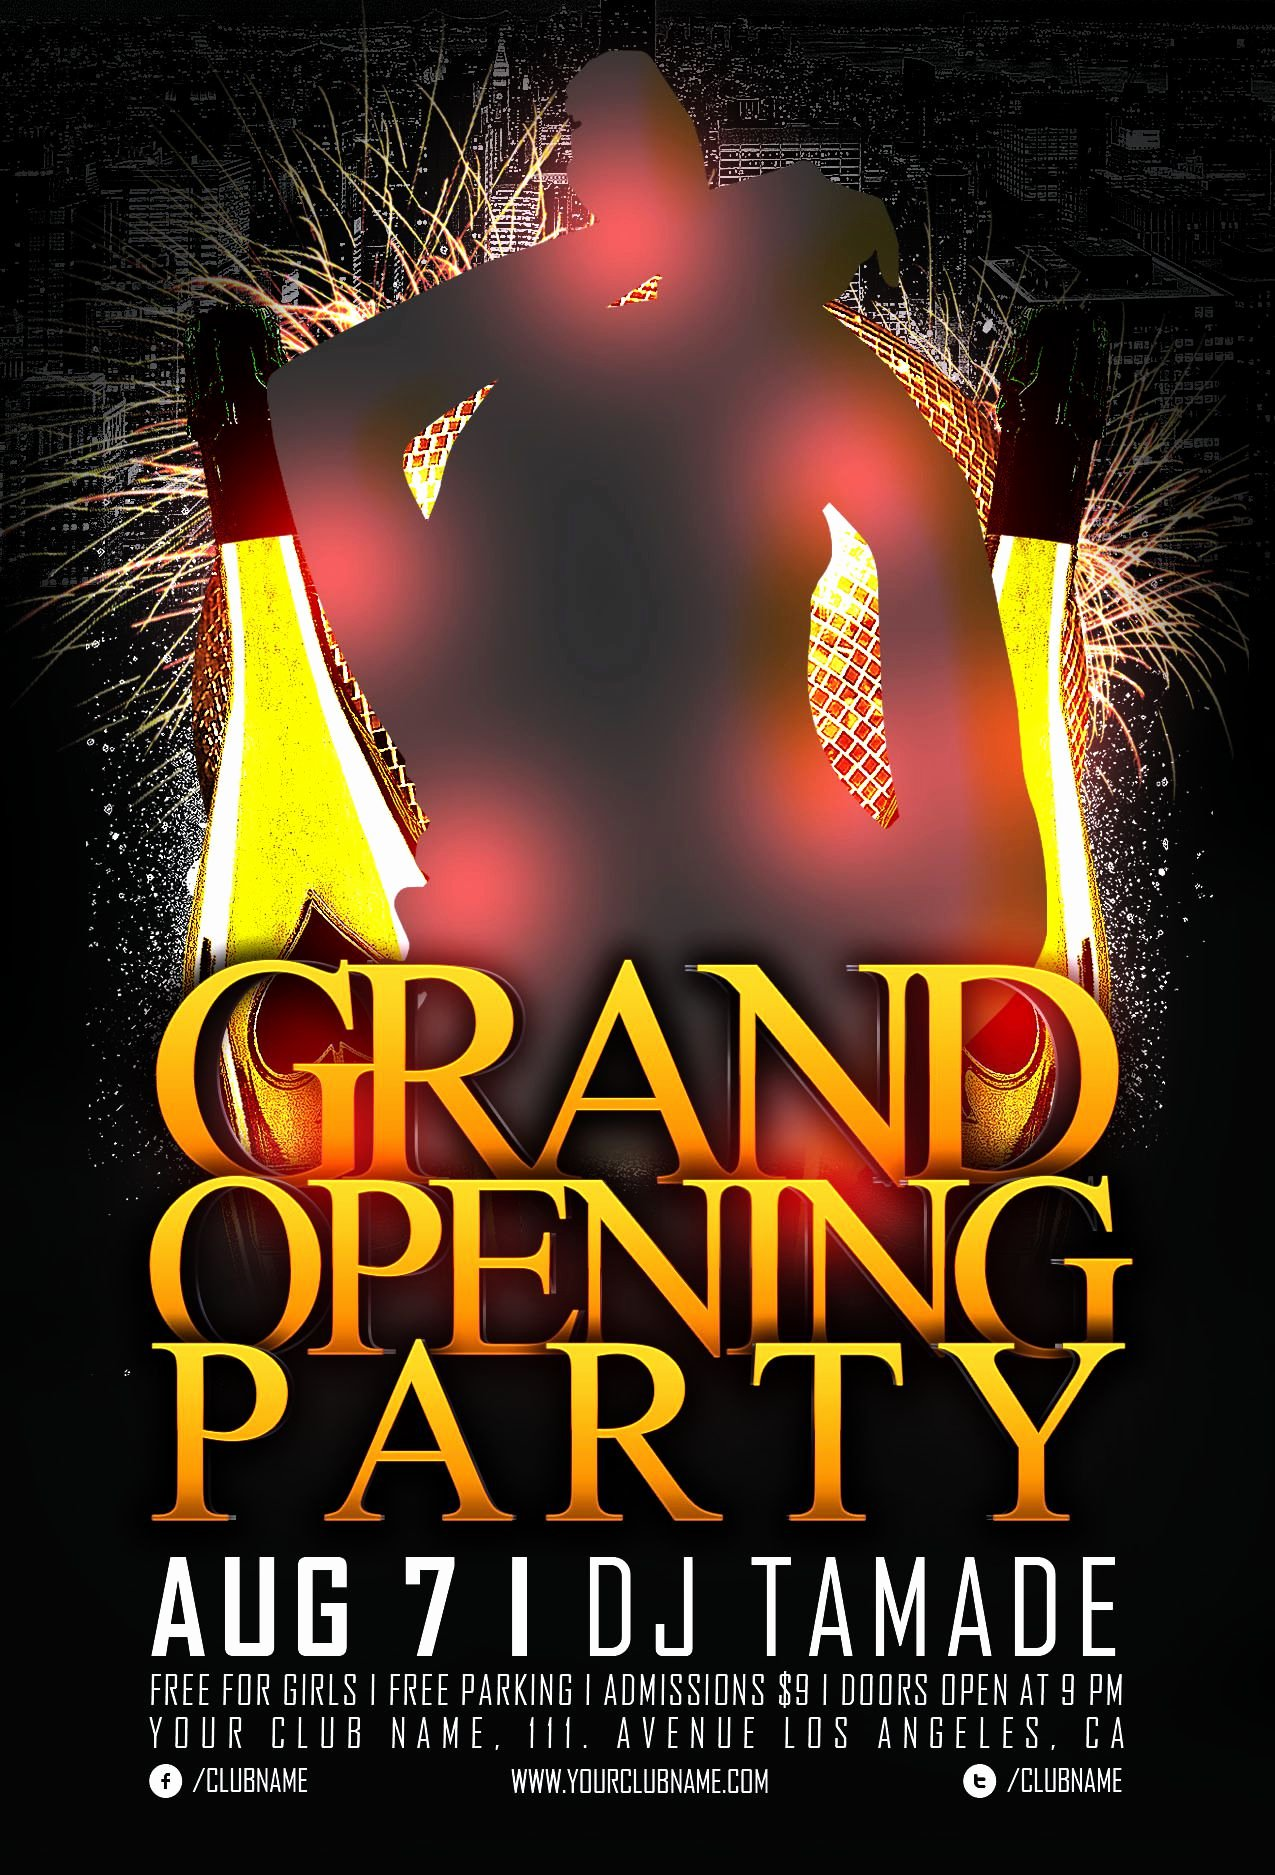 Grand Opening Flyer Template Lovely 20 Grand Opening Flyer Templates Free Demplates